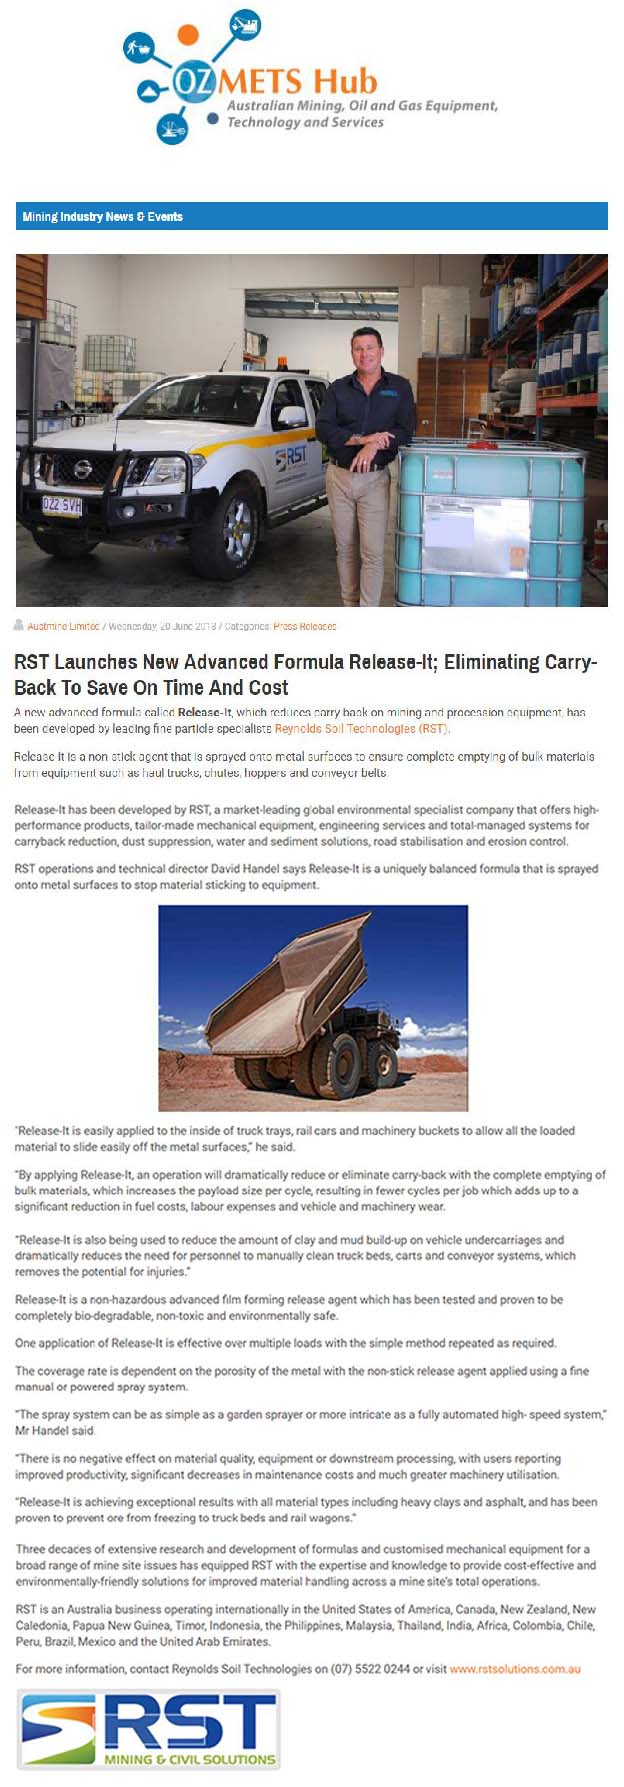 RST Launches New Advanced Formula Release-It; Eliminating Carry-Back to Save On Time and Cost